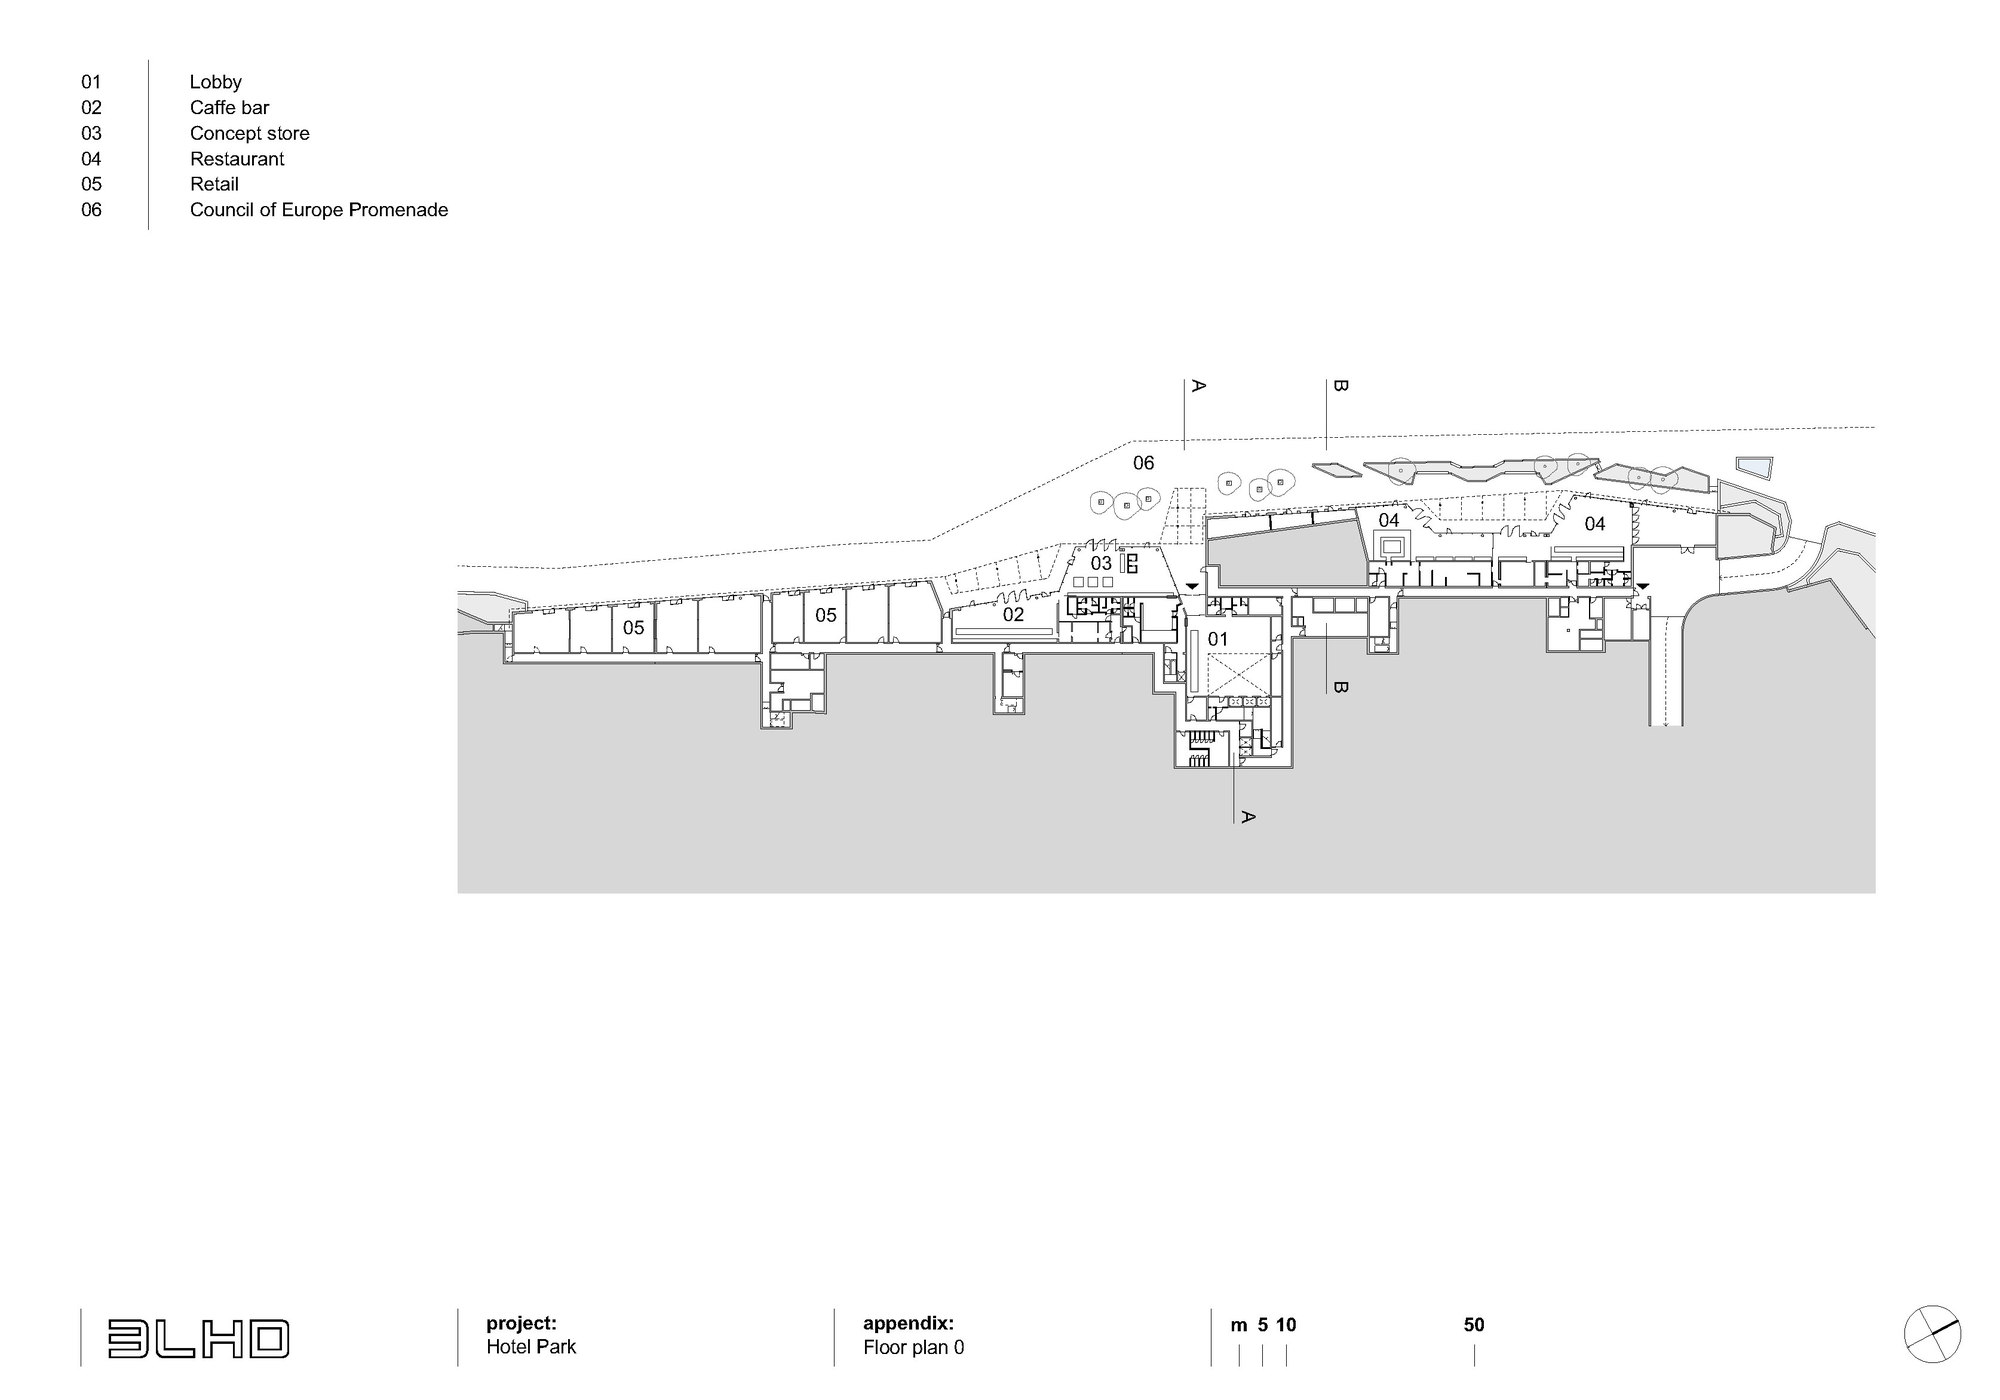 m2 _3LHD_202_GPHR_drawings_02_Floor_plan_0.jpg